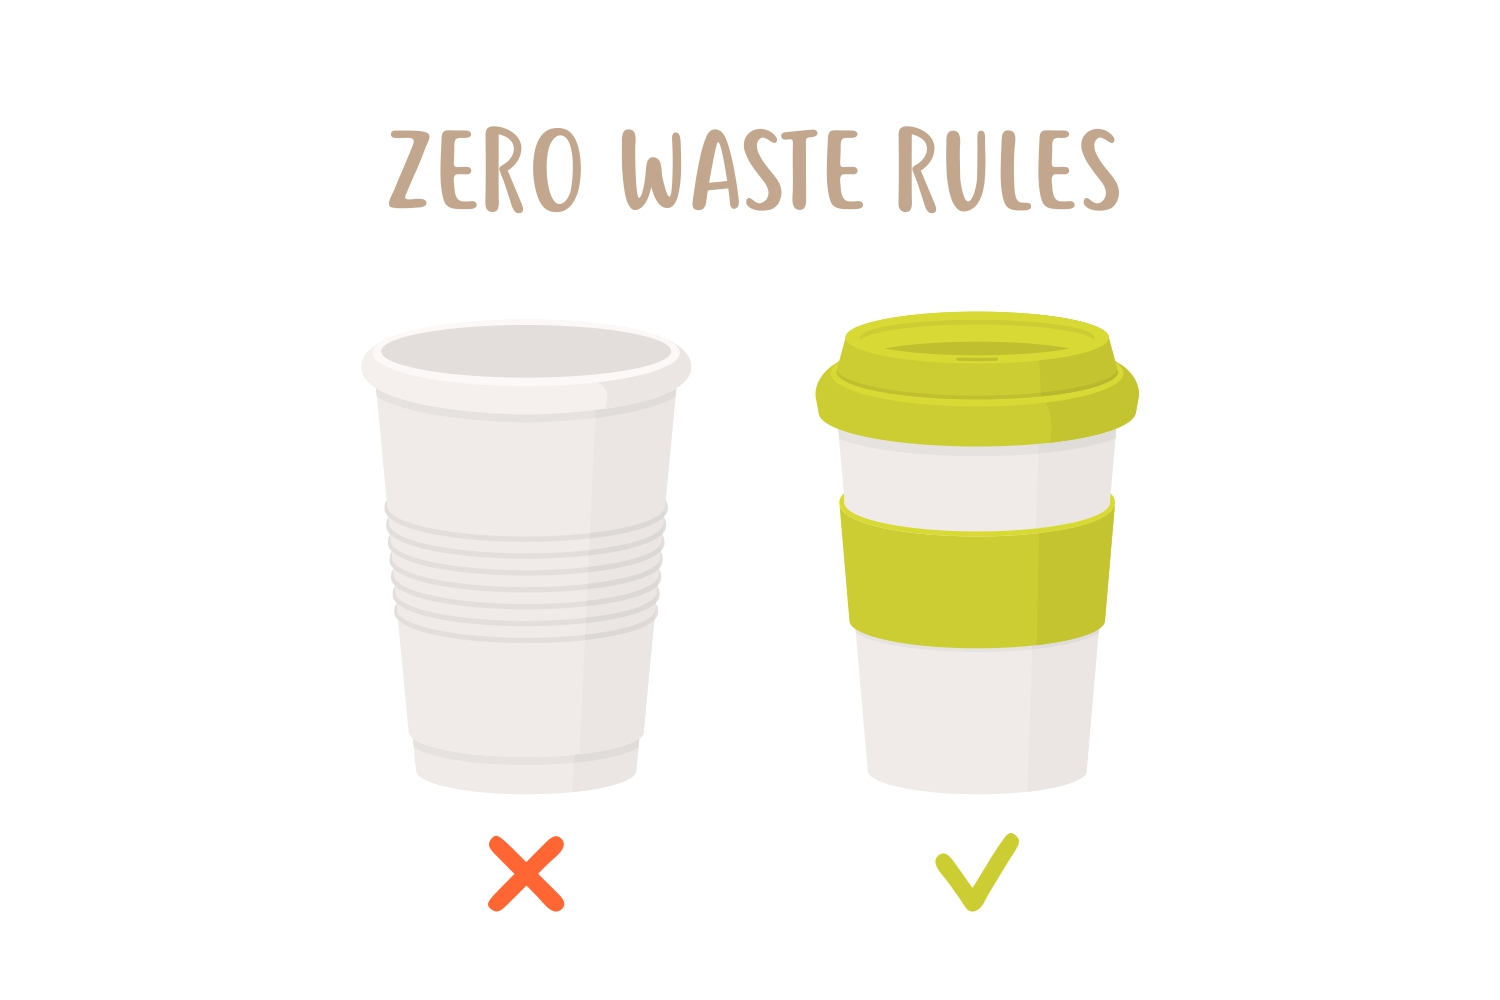 Zero waste rules example image 5